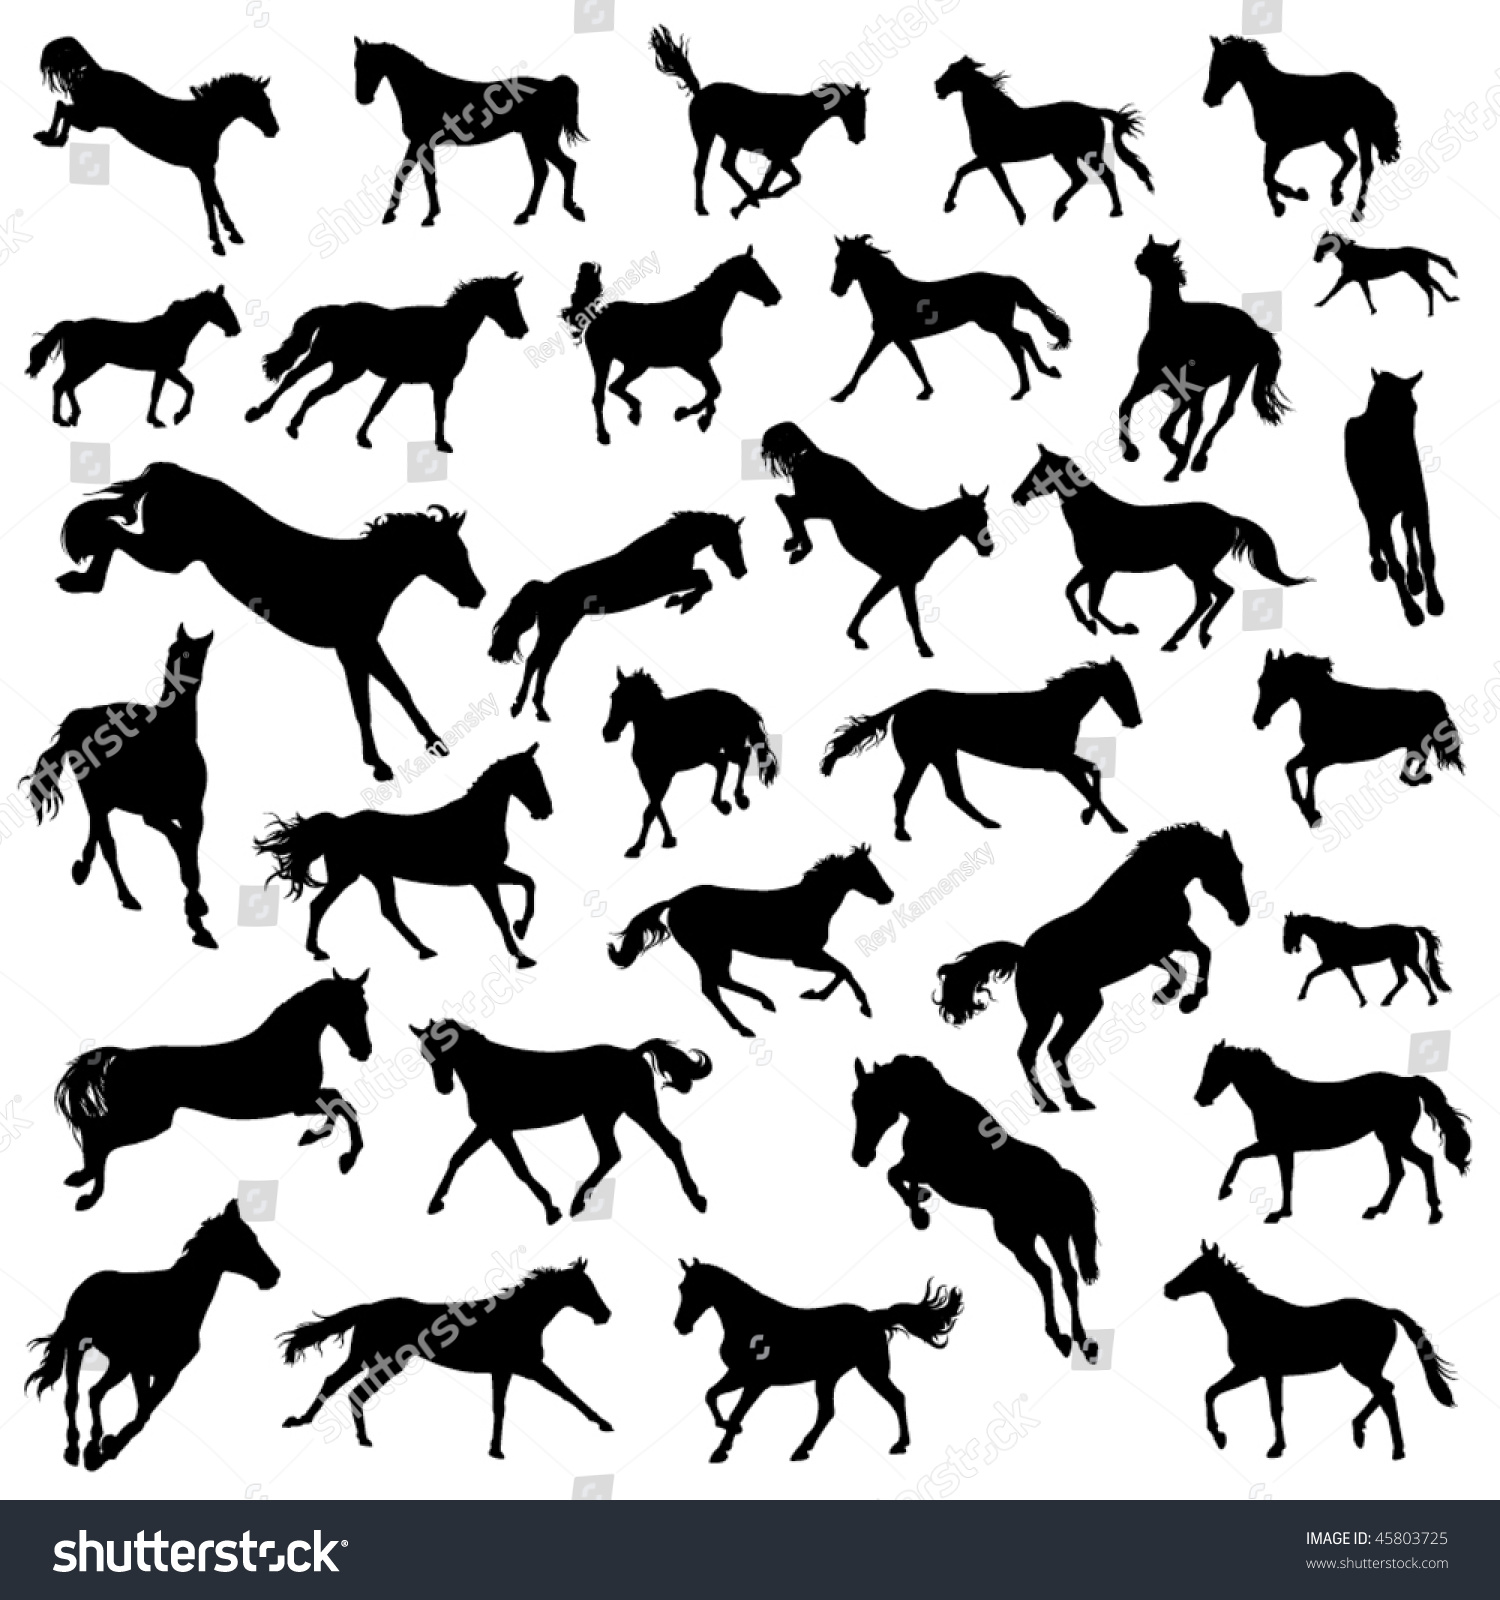 Running Horses Silhouette Wall Border Stock Vector Collection Of Silhouettes Of Galloping Horses